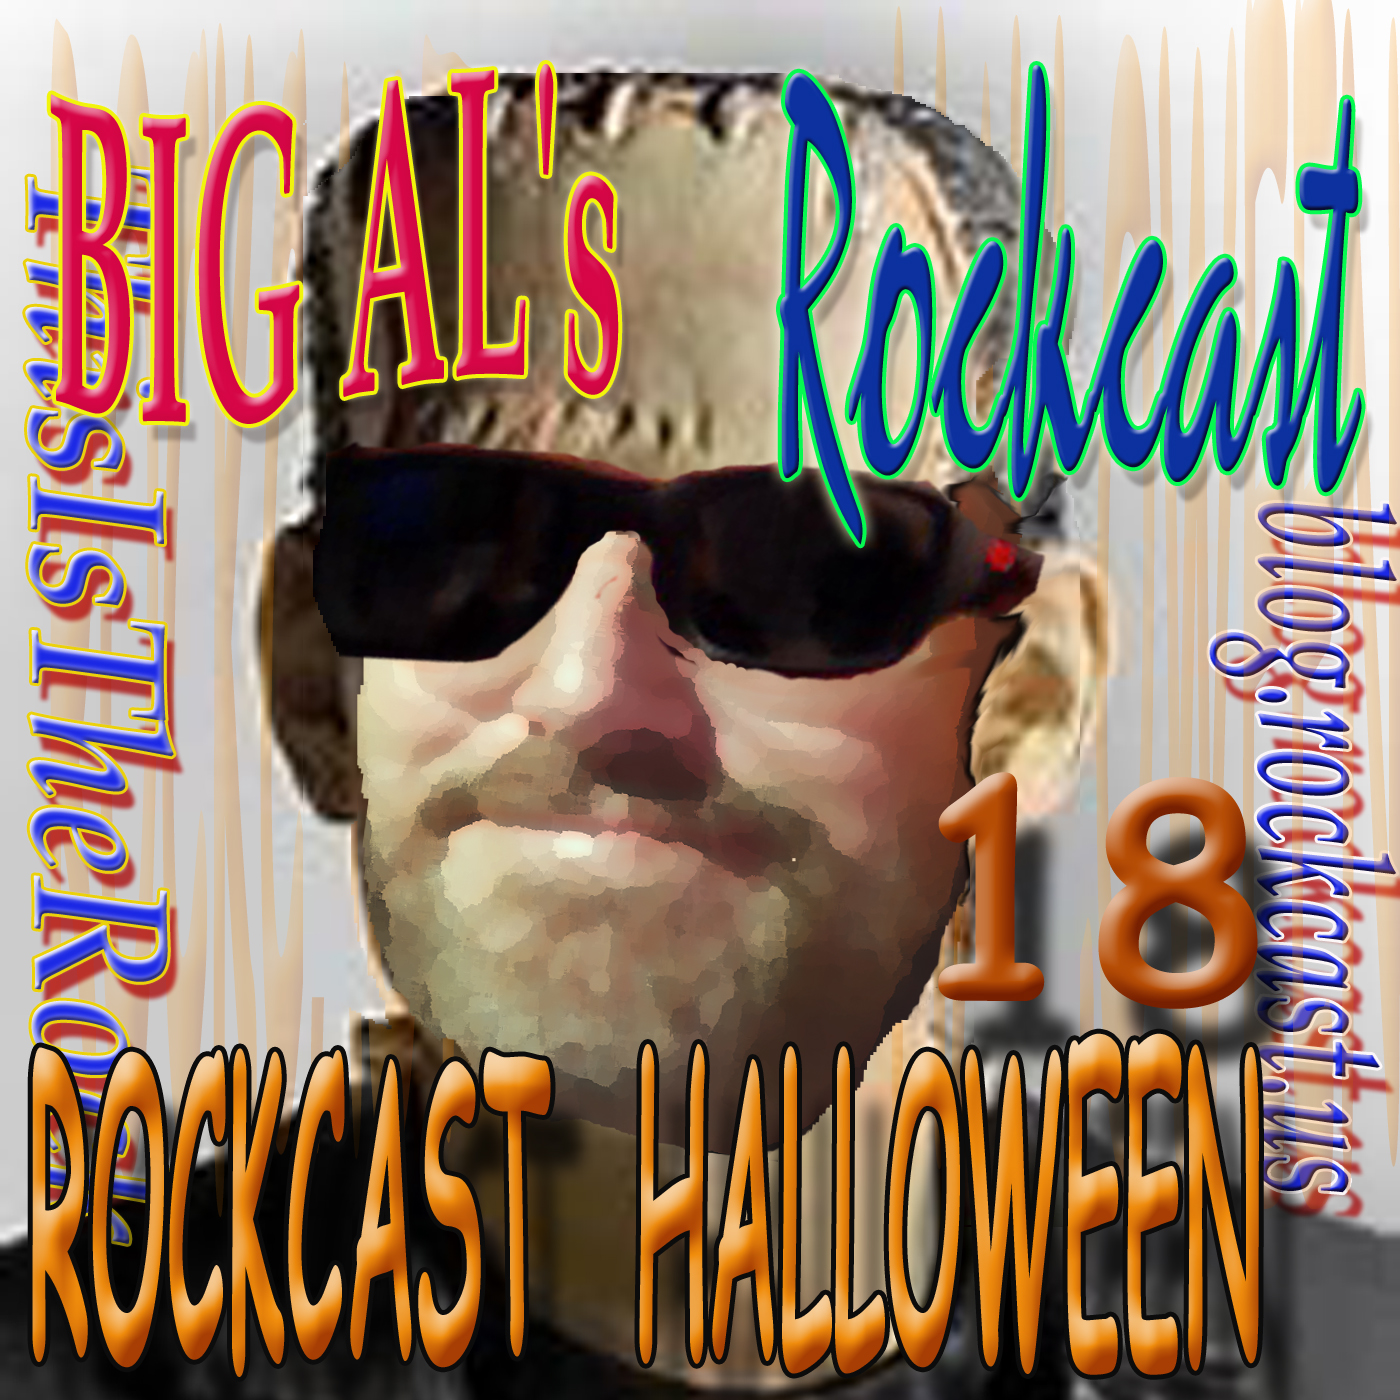 rockcast friday.10.19.18a halloween '18 featuring; everclear